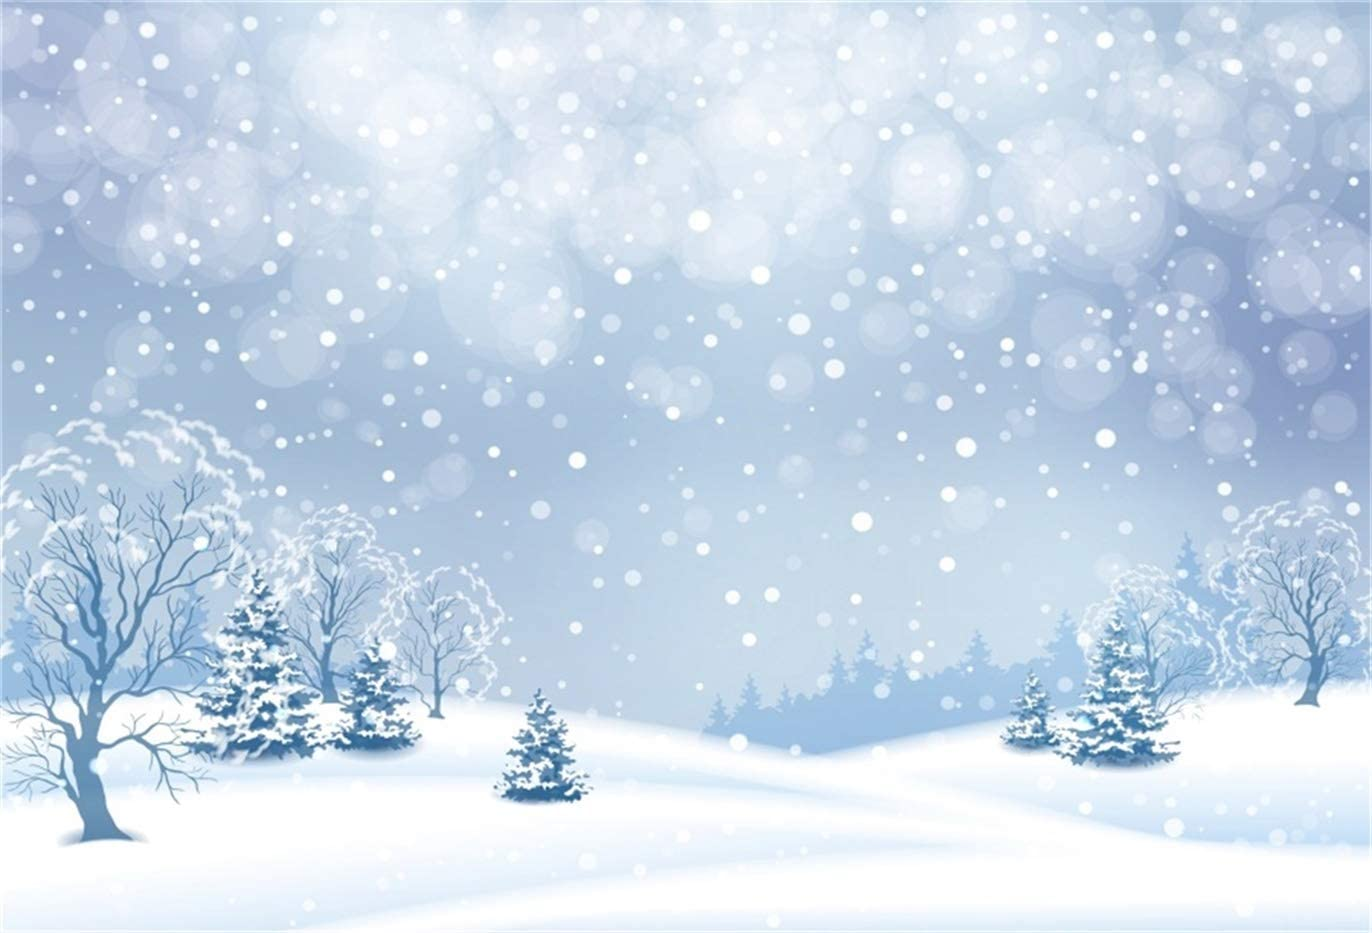 LB Winter Snow Backdrop 10x8ft Vinyl Blue Ice World Tree Backdrops for Photography Christmas Party Kids Birthday Event Portrait Photoshoot Photo Booth Studio Props